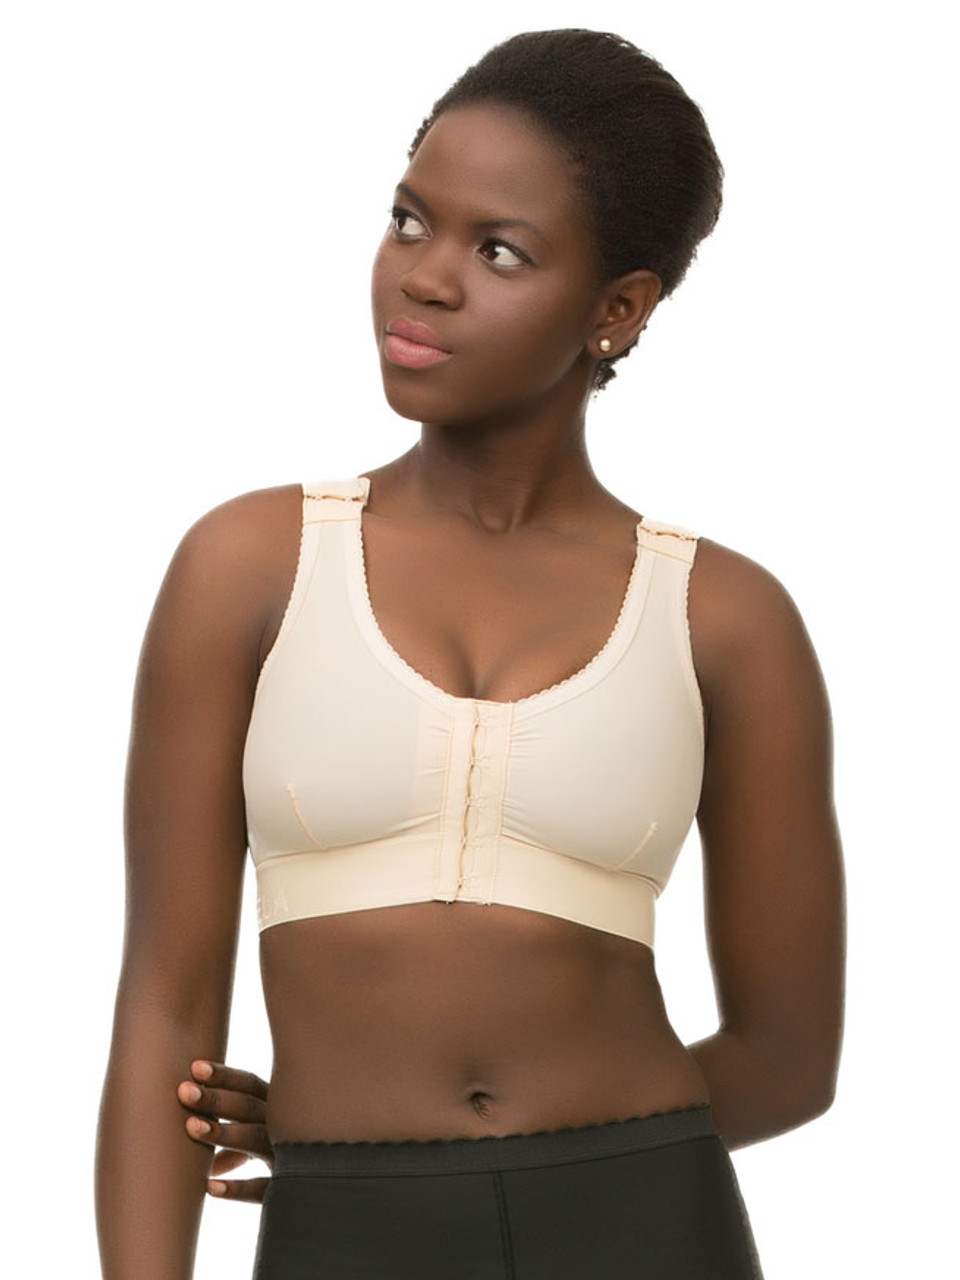 e2afd13a7 Isavela Compression Bra with 2